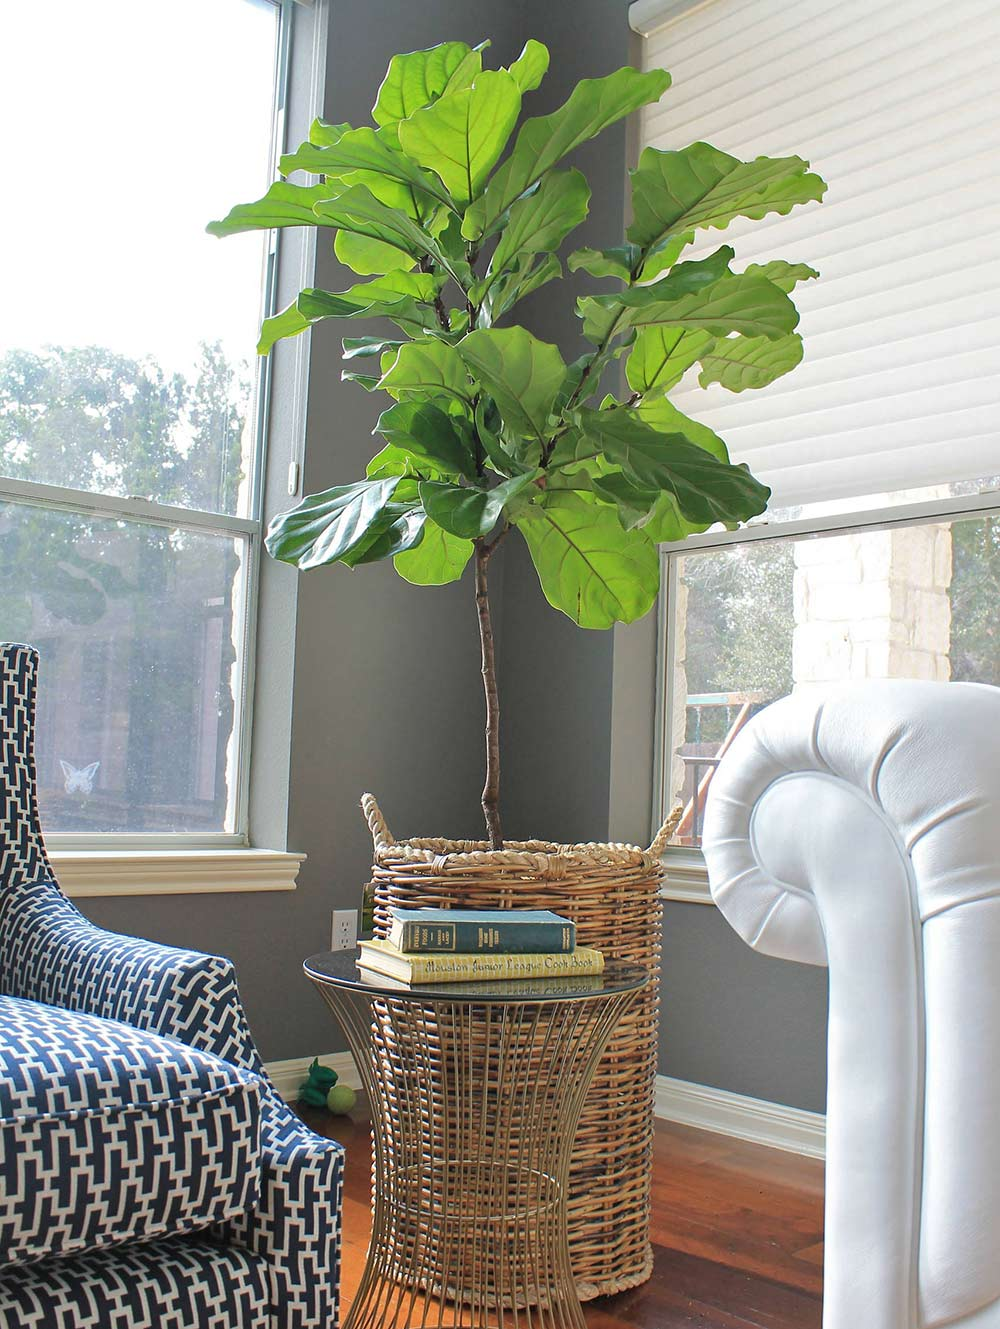 Fiddle Leaf Fig - Caring For This Trendy Houseplant